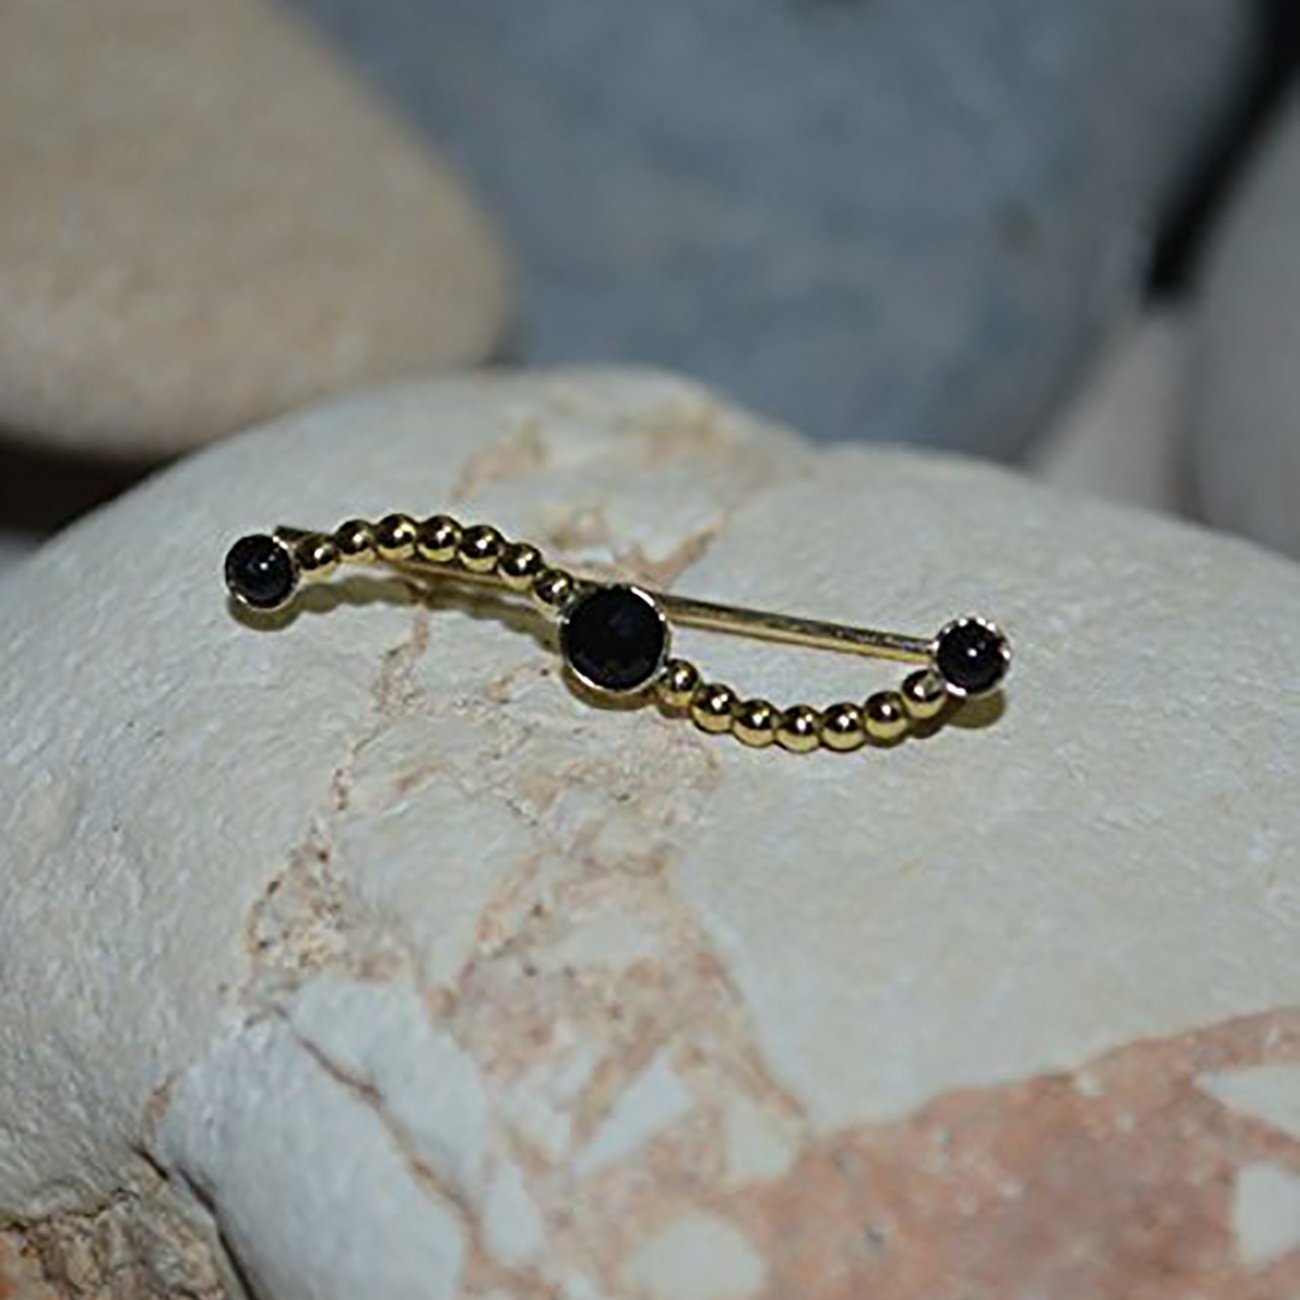 Onyx EAR CLIMBER Earrings//14k Gold Filled Ear Pins - Up The Ear Earrings - Ear Sweep - Ear Wrap - Ear Crawler - Ear Cuff